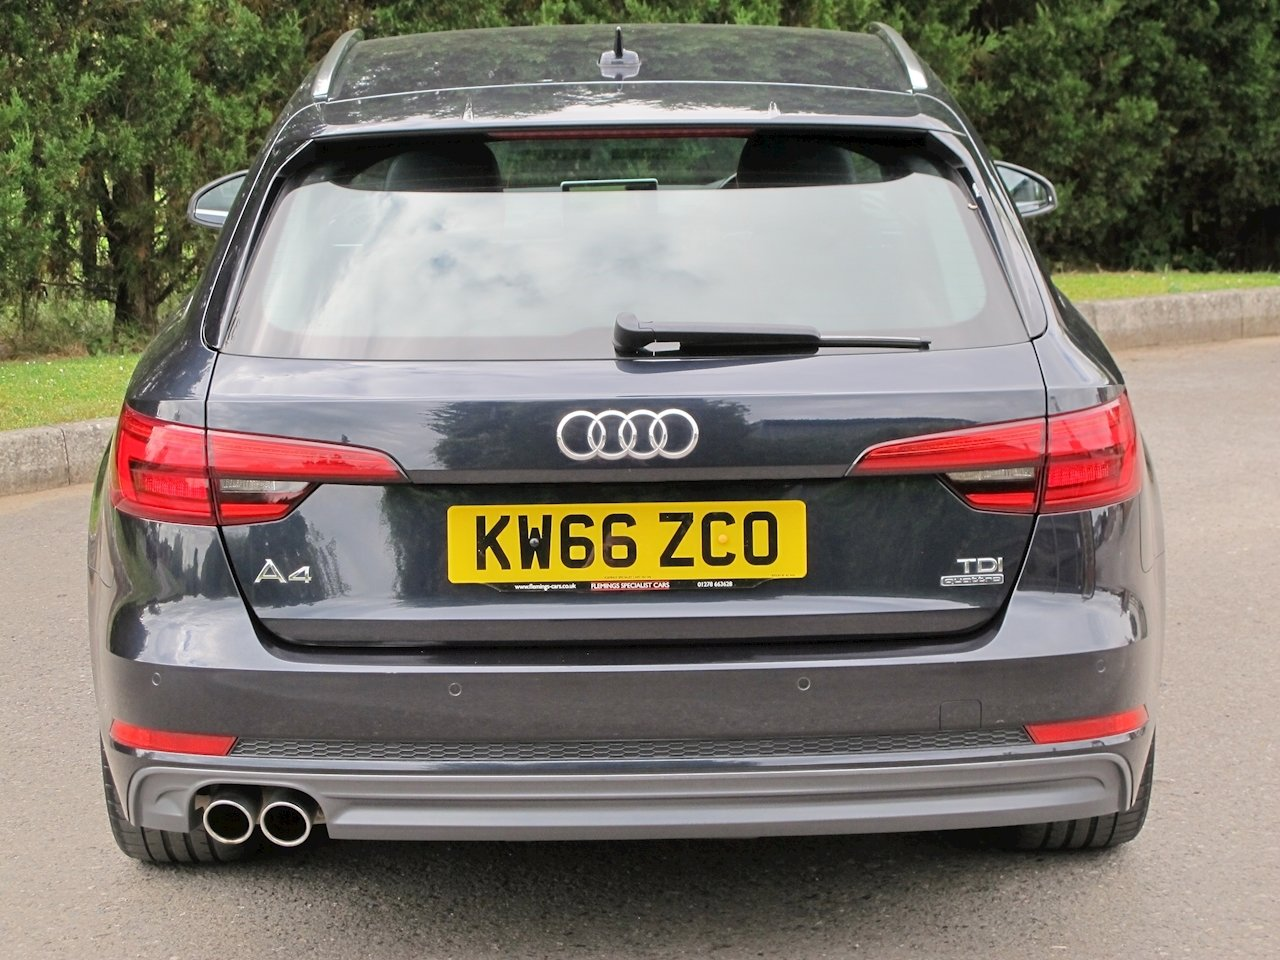 2017 Audi A4 Avant 3.0TDI 272PS quattro S Line S-Tronic For Sale (picture 4 of 6)